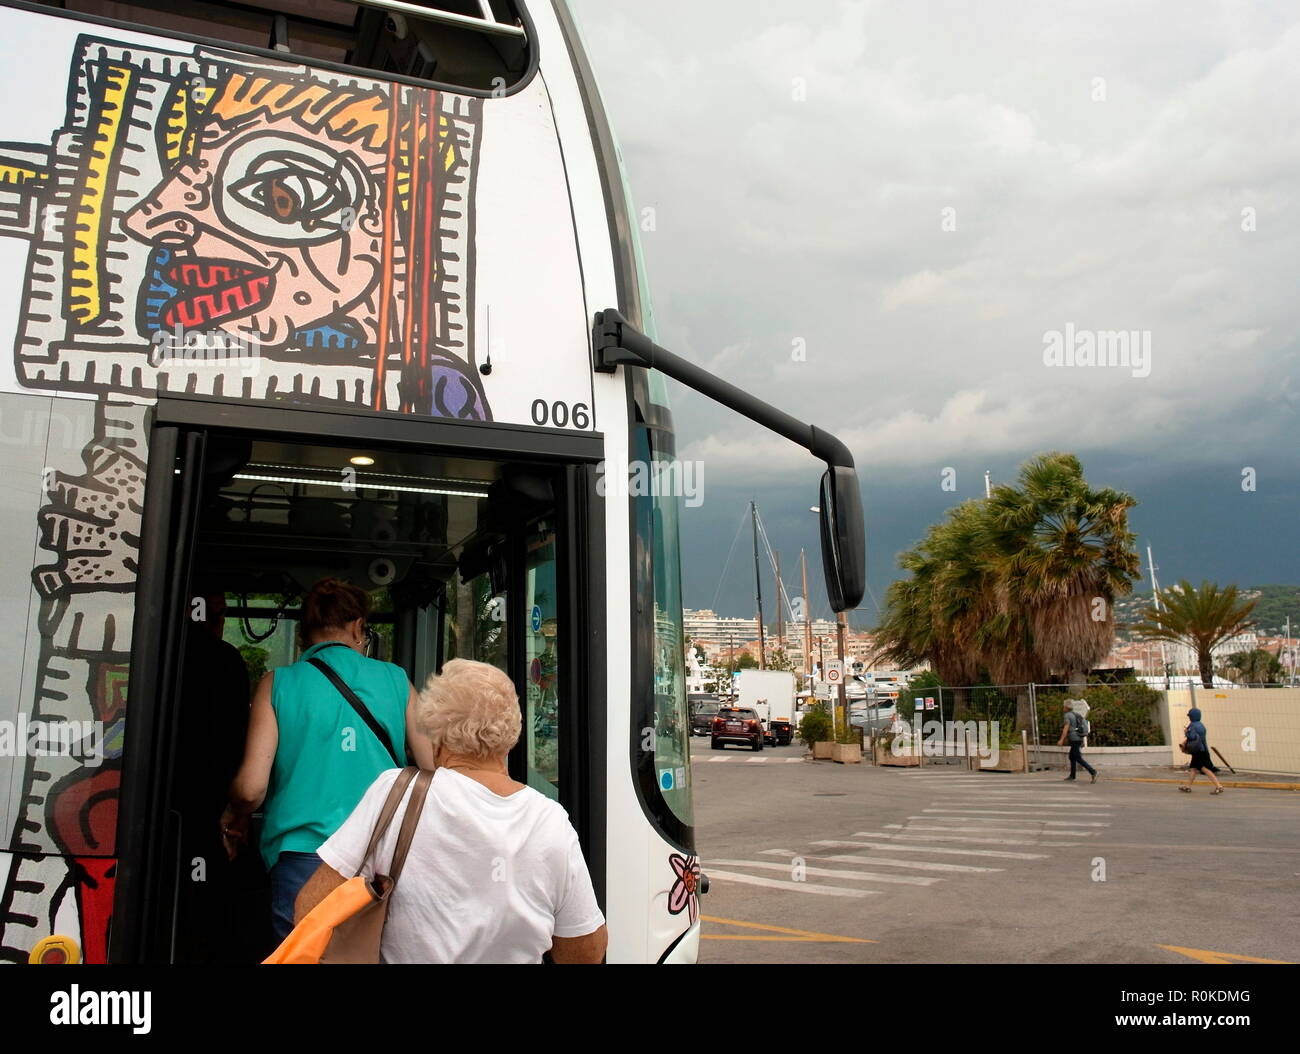 AJAXNETPHOTO. 2018. CANNES, FRANCE. - COTE D'AZUR RESORT - PASSENGERS BOARDING THE PALM BEACH BUS AT THE OLD PORT NEAR LE SUQUET WITH A STORM BREWING OVER THE MOUNTAINS BEHIND THE TOWN. PHOTO:JONATHAN EASTLAND/AJAX REF:GXR180310_663 - Stock Image